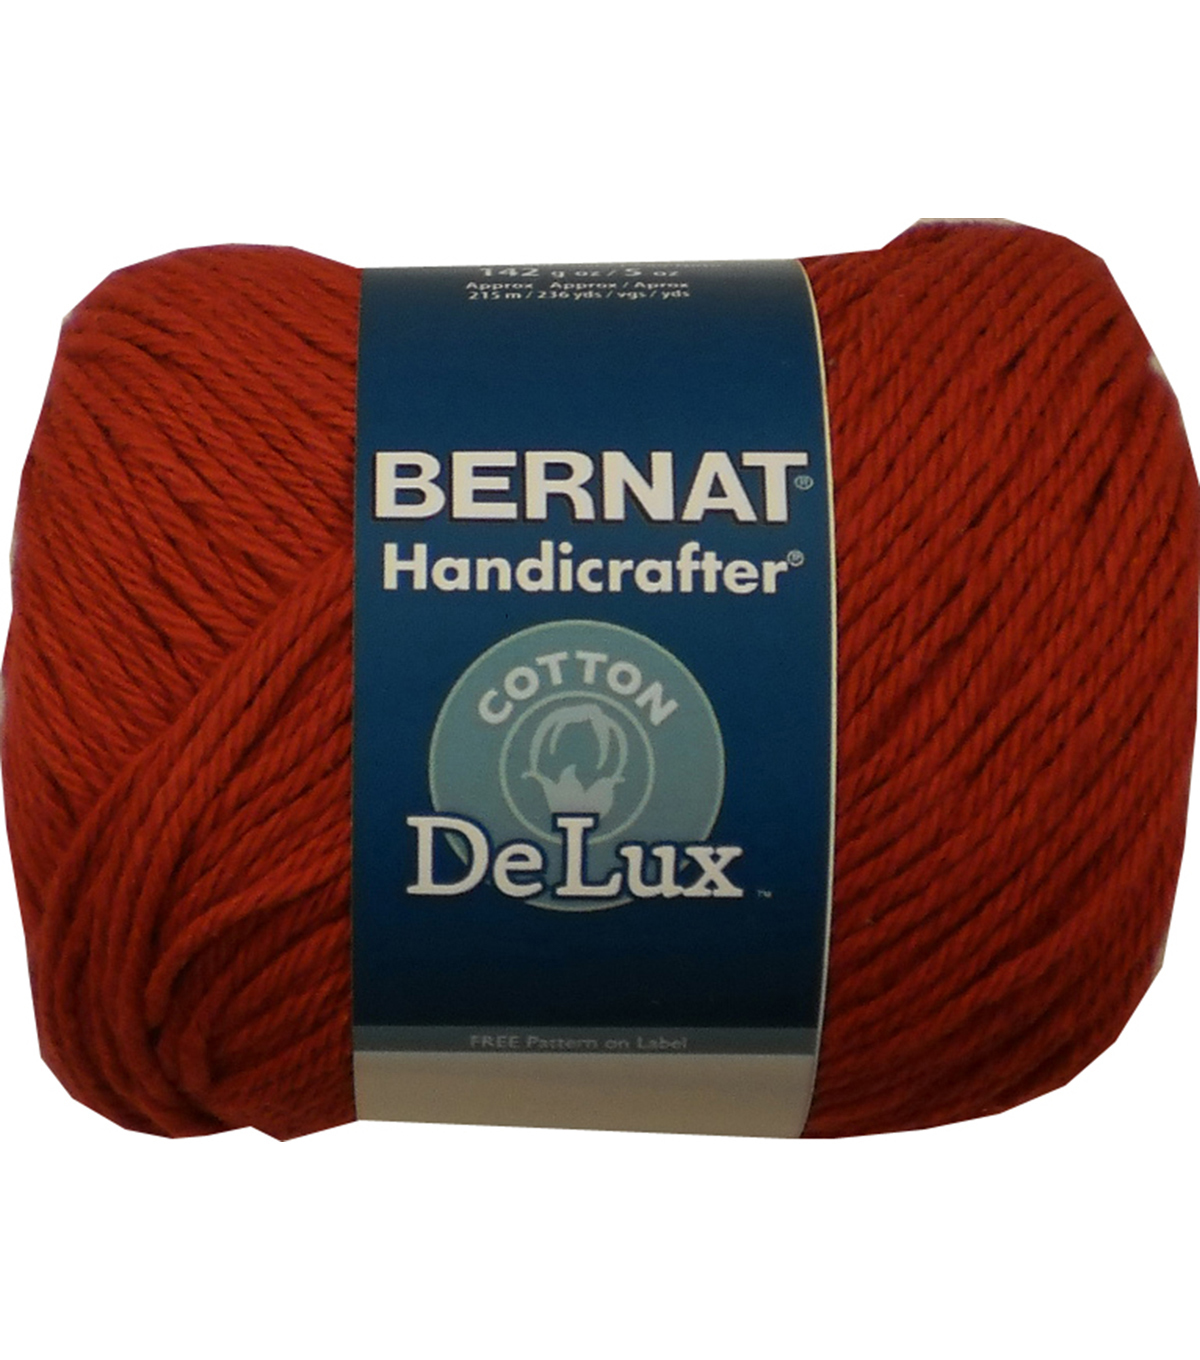 Bernat Handicrafter DeLux Cotton Yarn